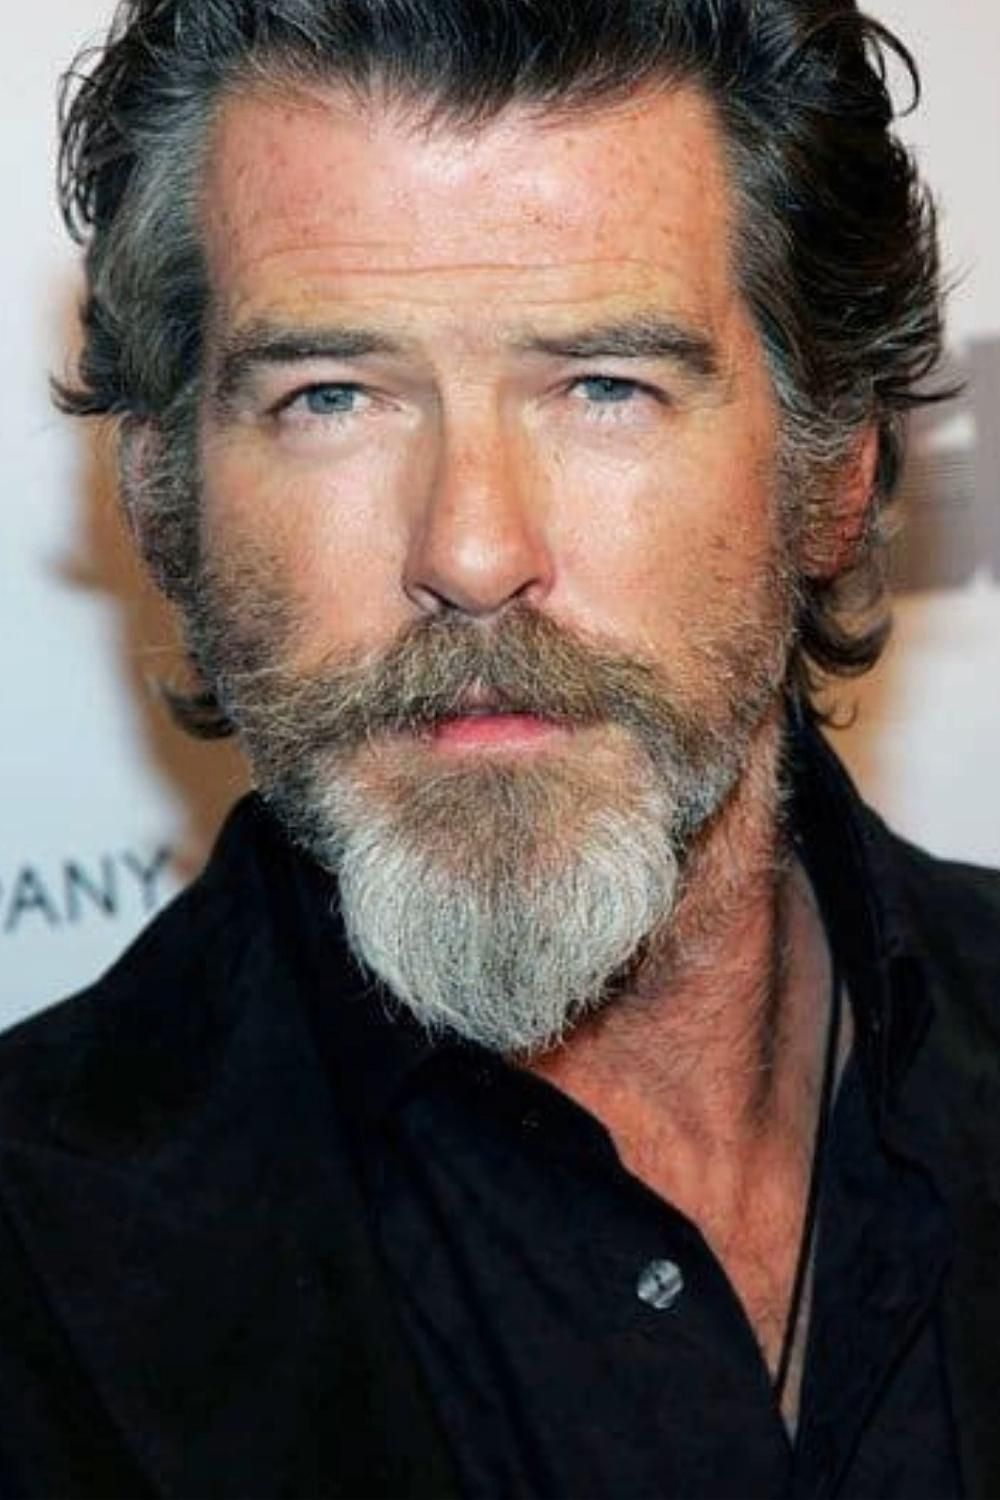 Long Goatee: How To Grow It, Best Styles